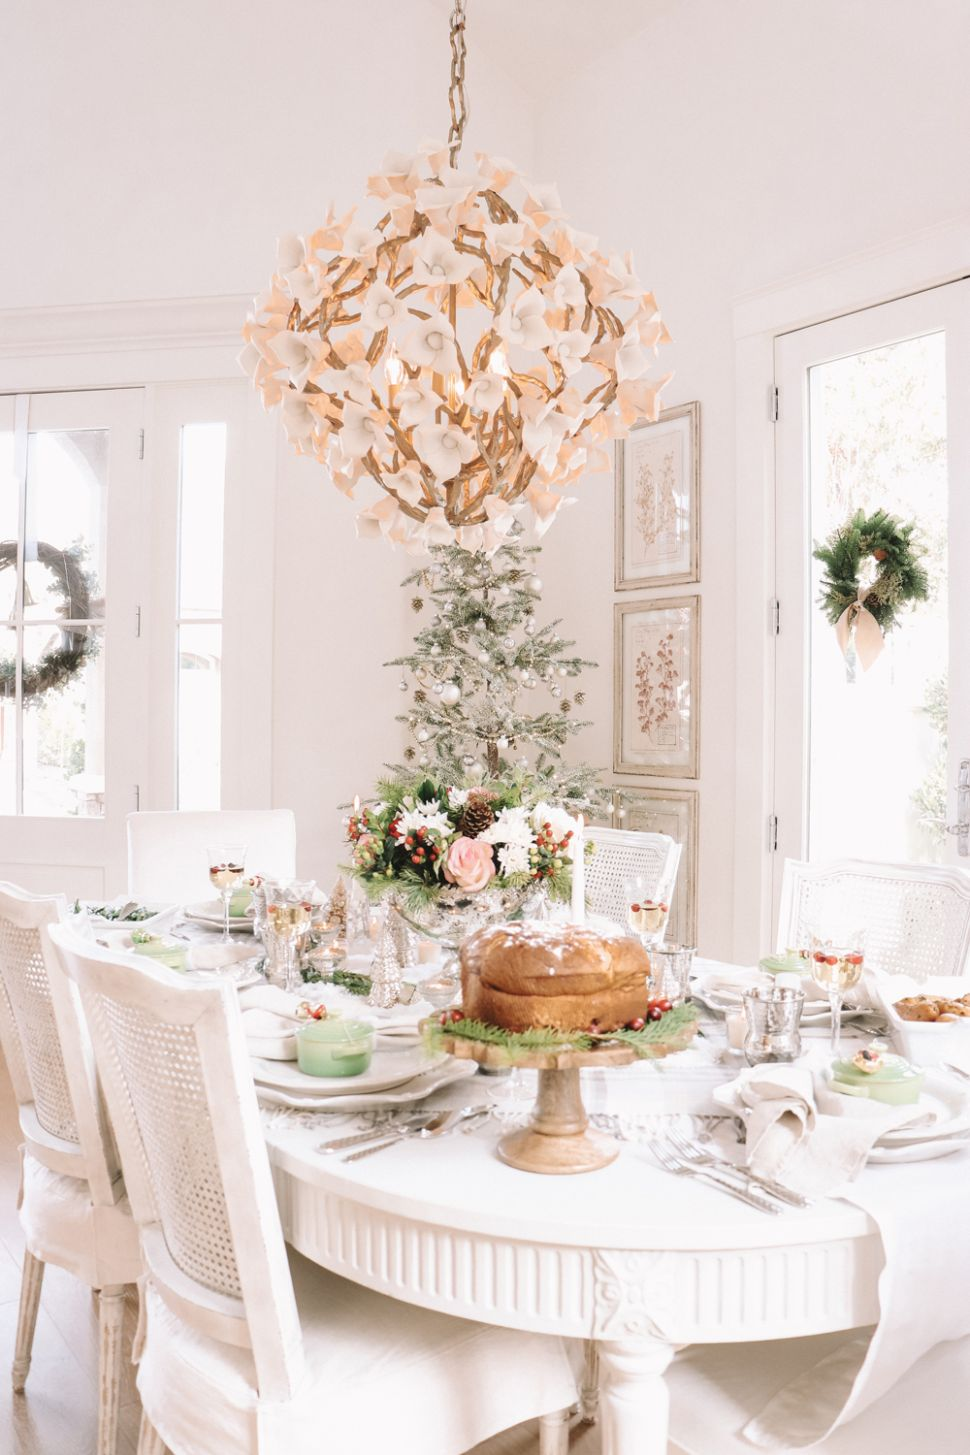 Christmas Dinner Party and Cookware Gift Ideas - KristyWicks